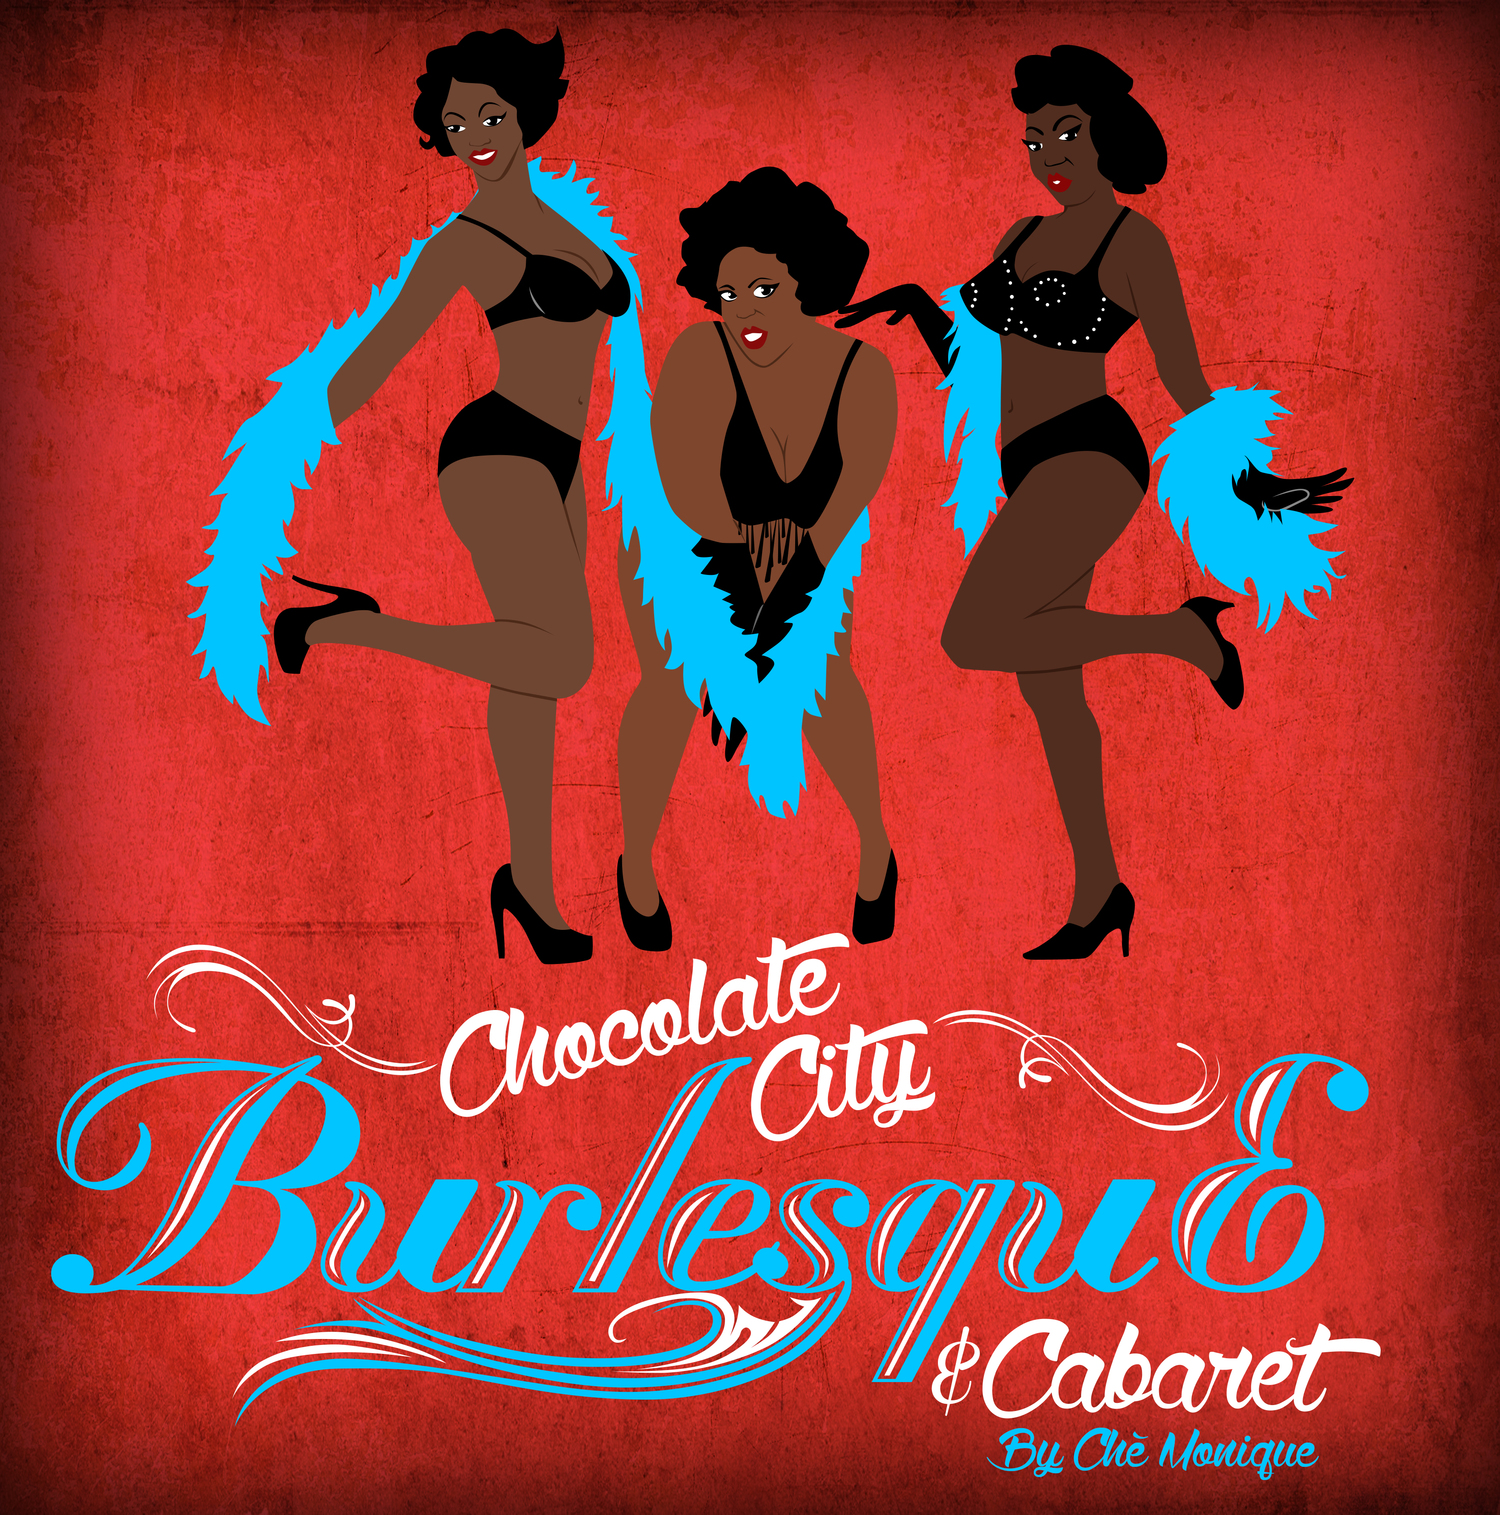 Chocolate City Burlesque & Cabaret